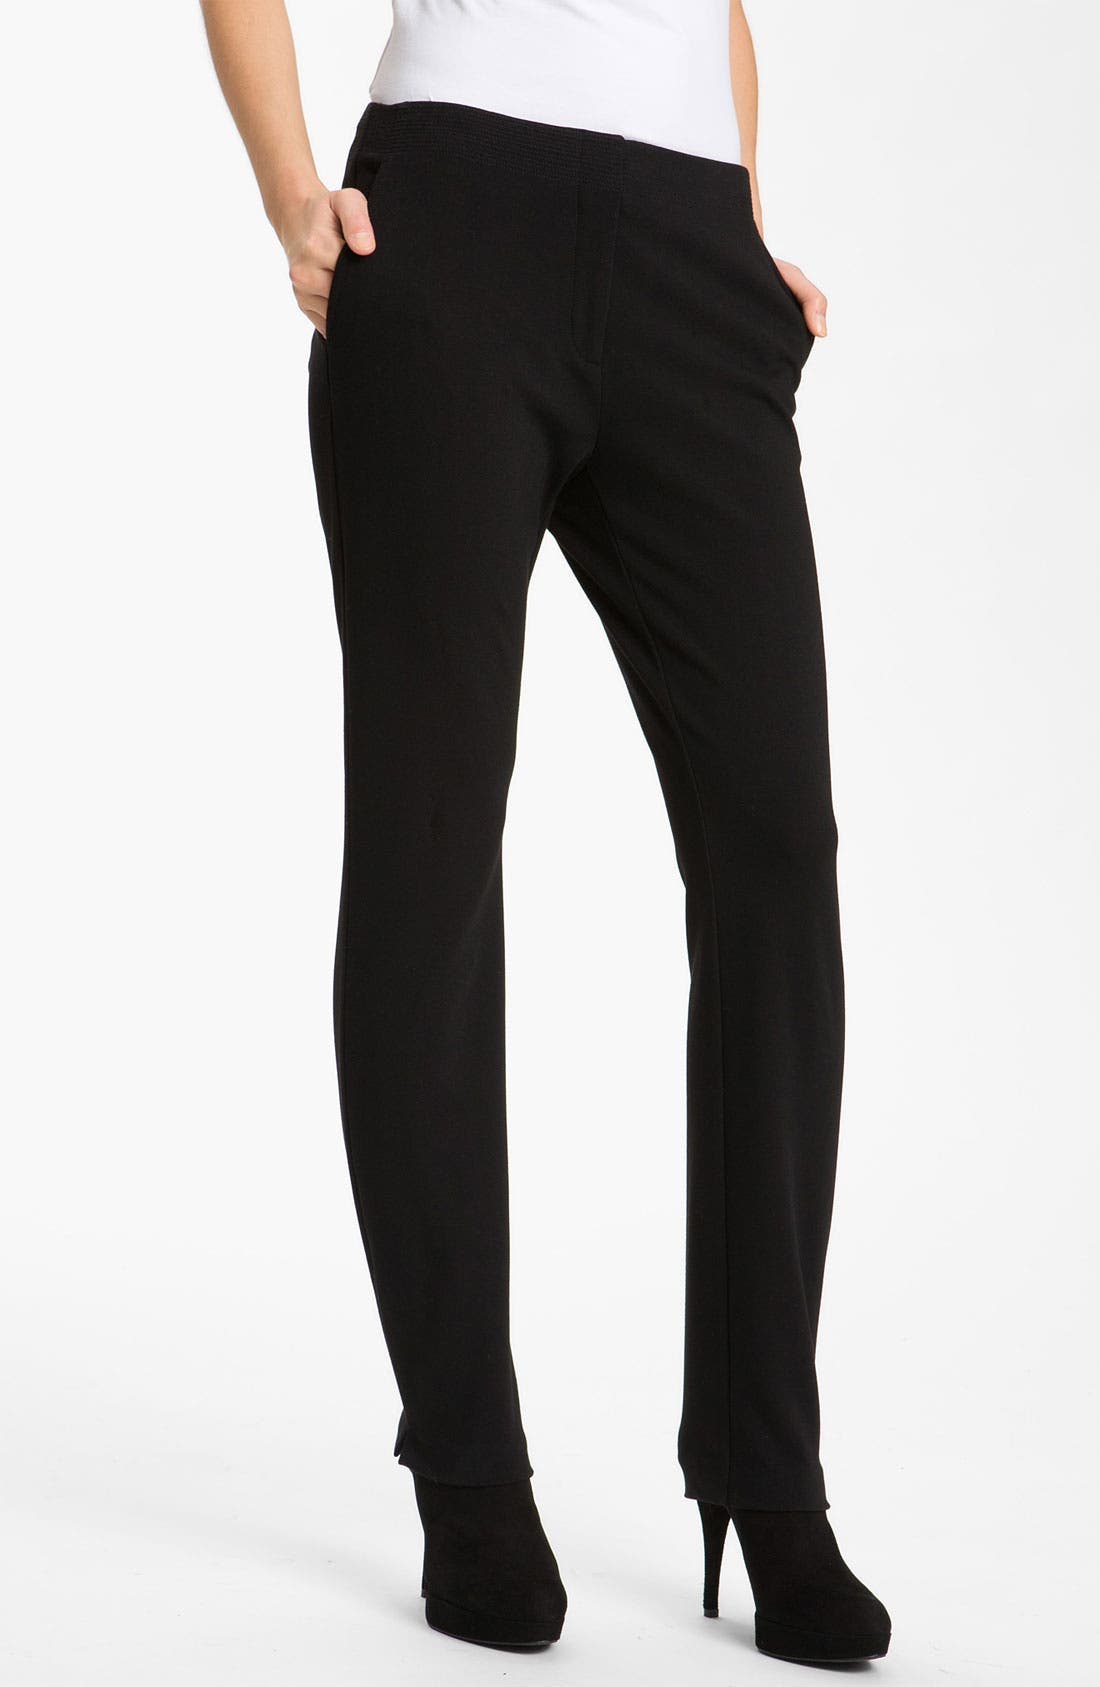 Main Image - Eileen Fisher Slim Ponte Knit Pants (Petite)